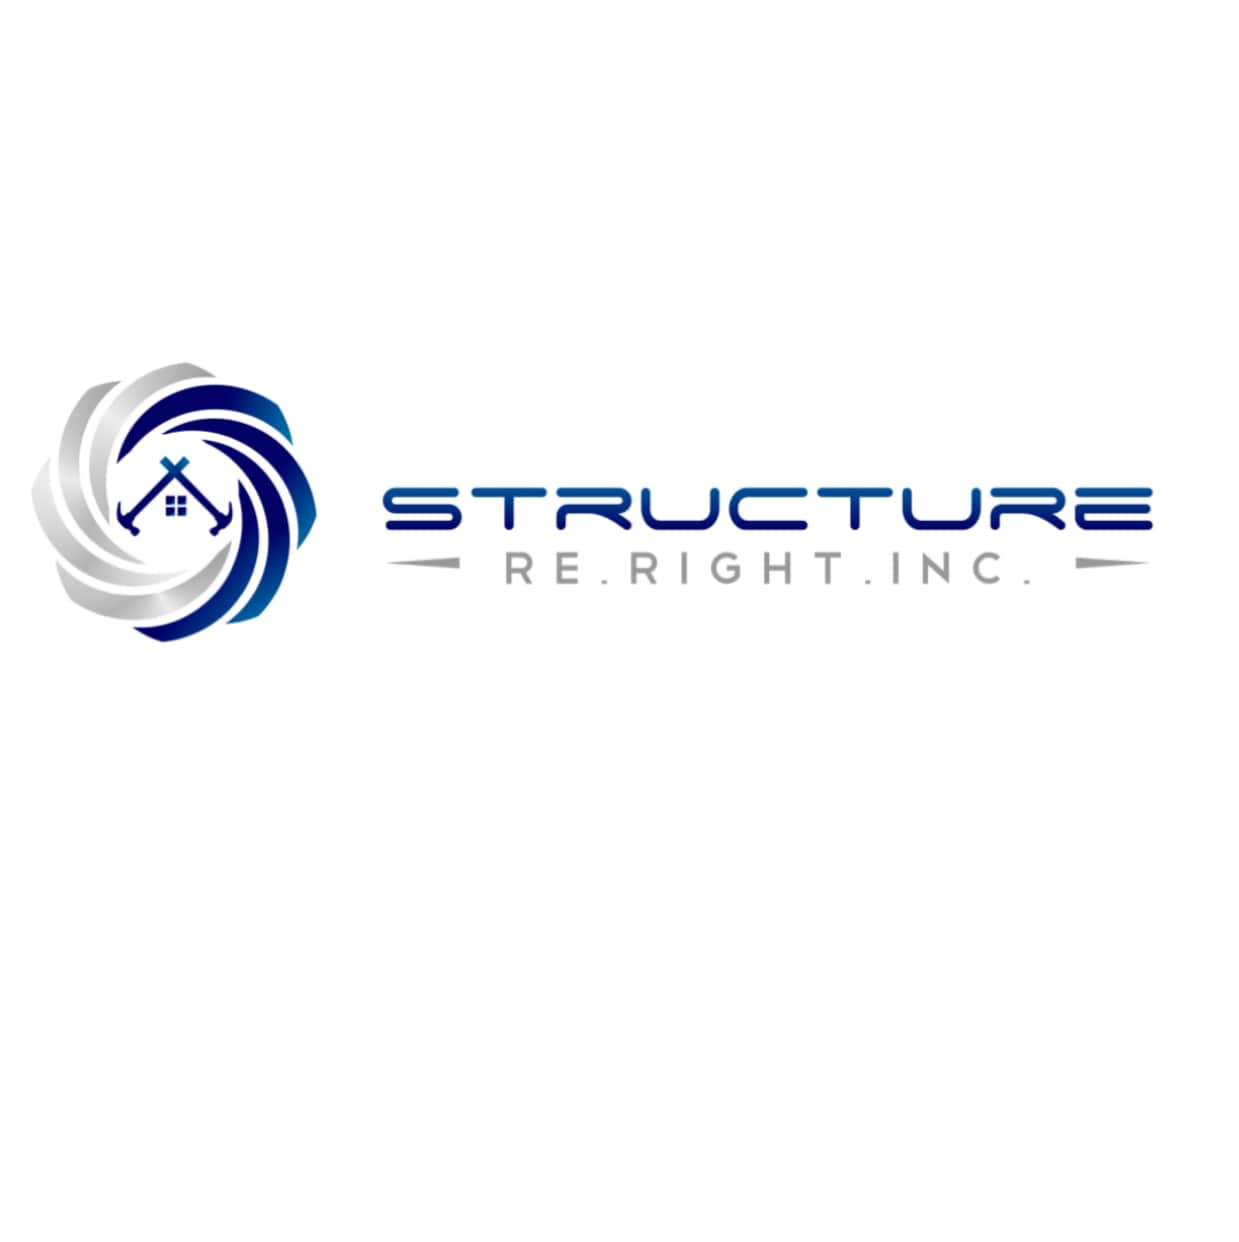 Structure Re-Right Inc.